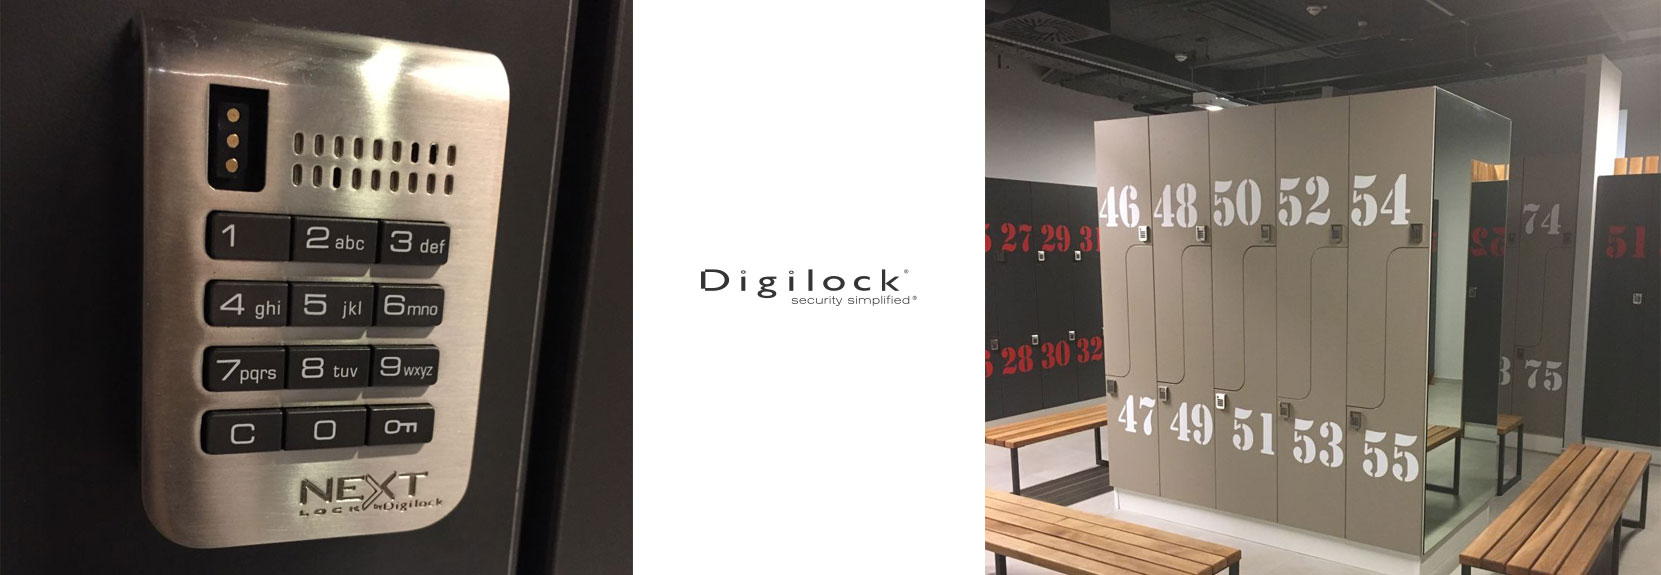 digilock-slider